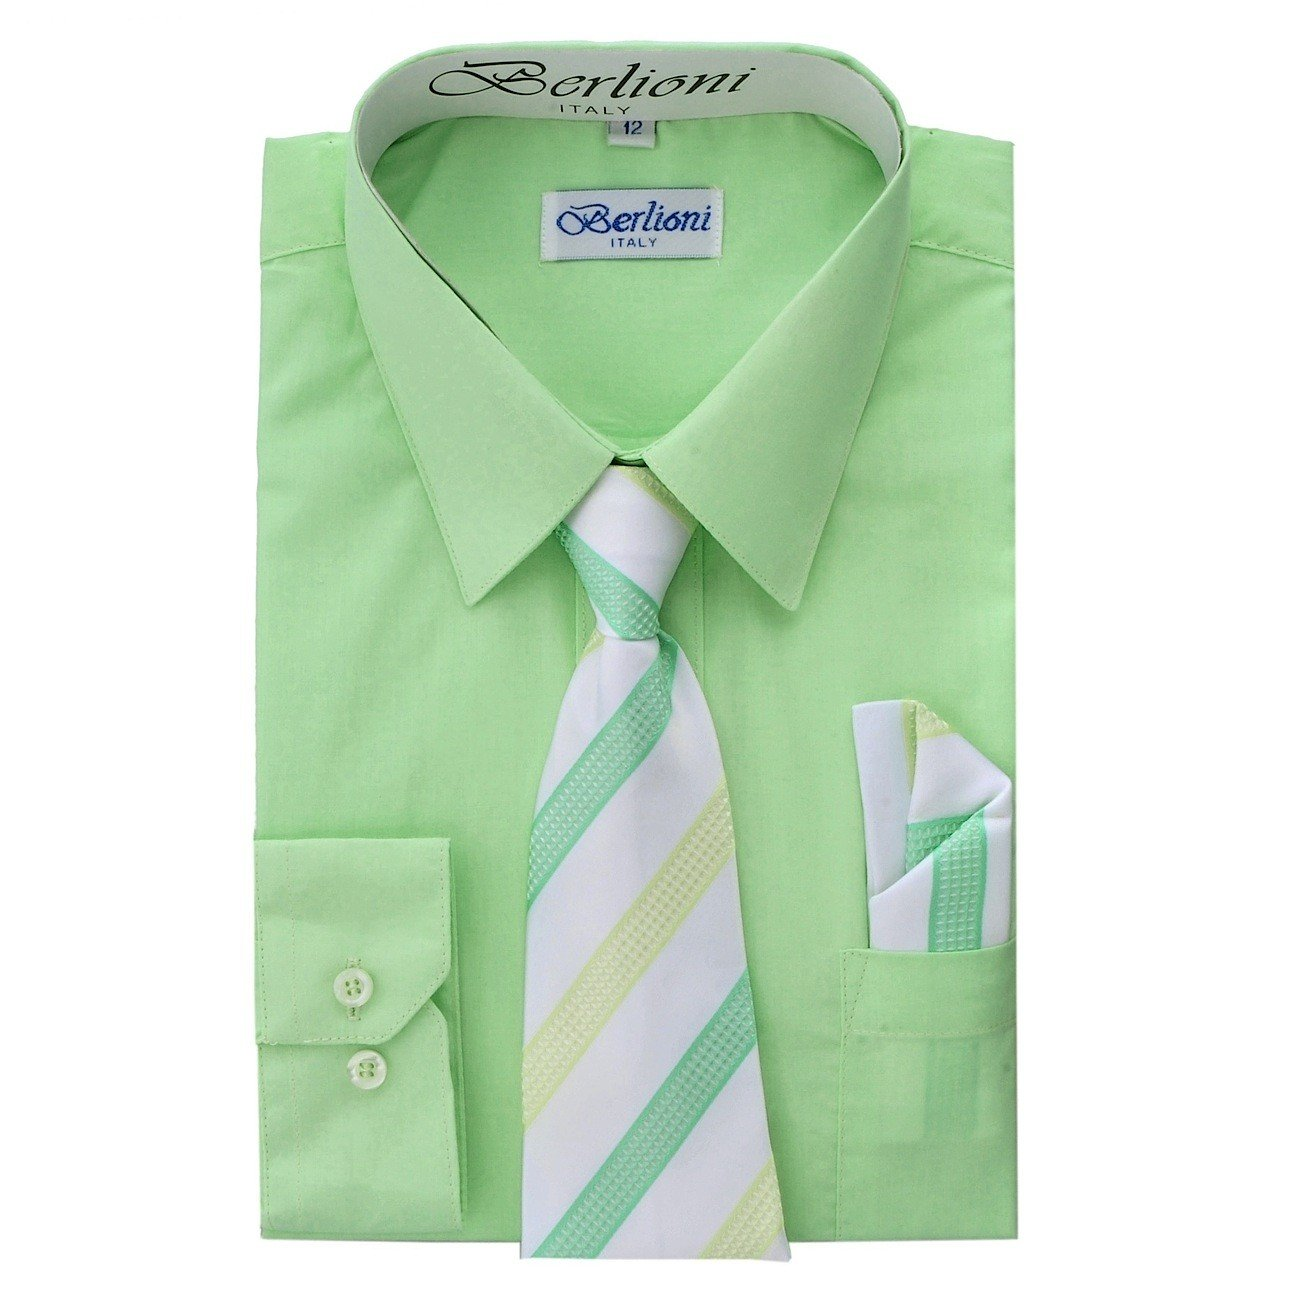 Boy's Dress Shirt, Necktie, and Hanky Set - Lime, Size 20